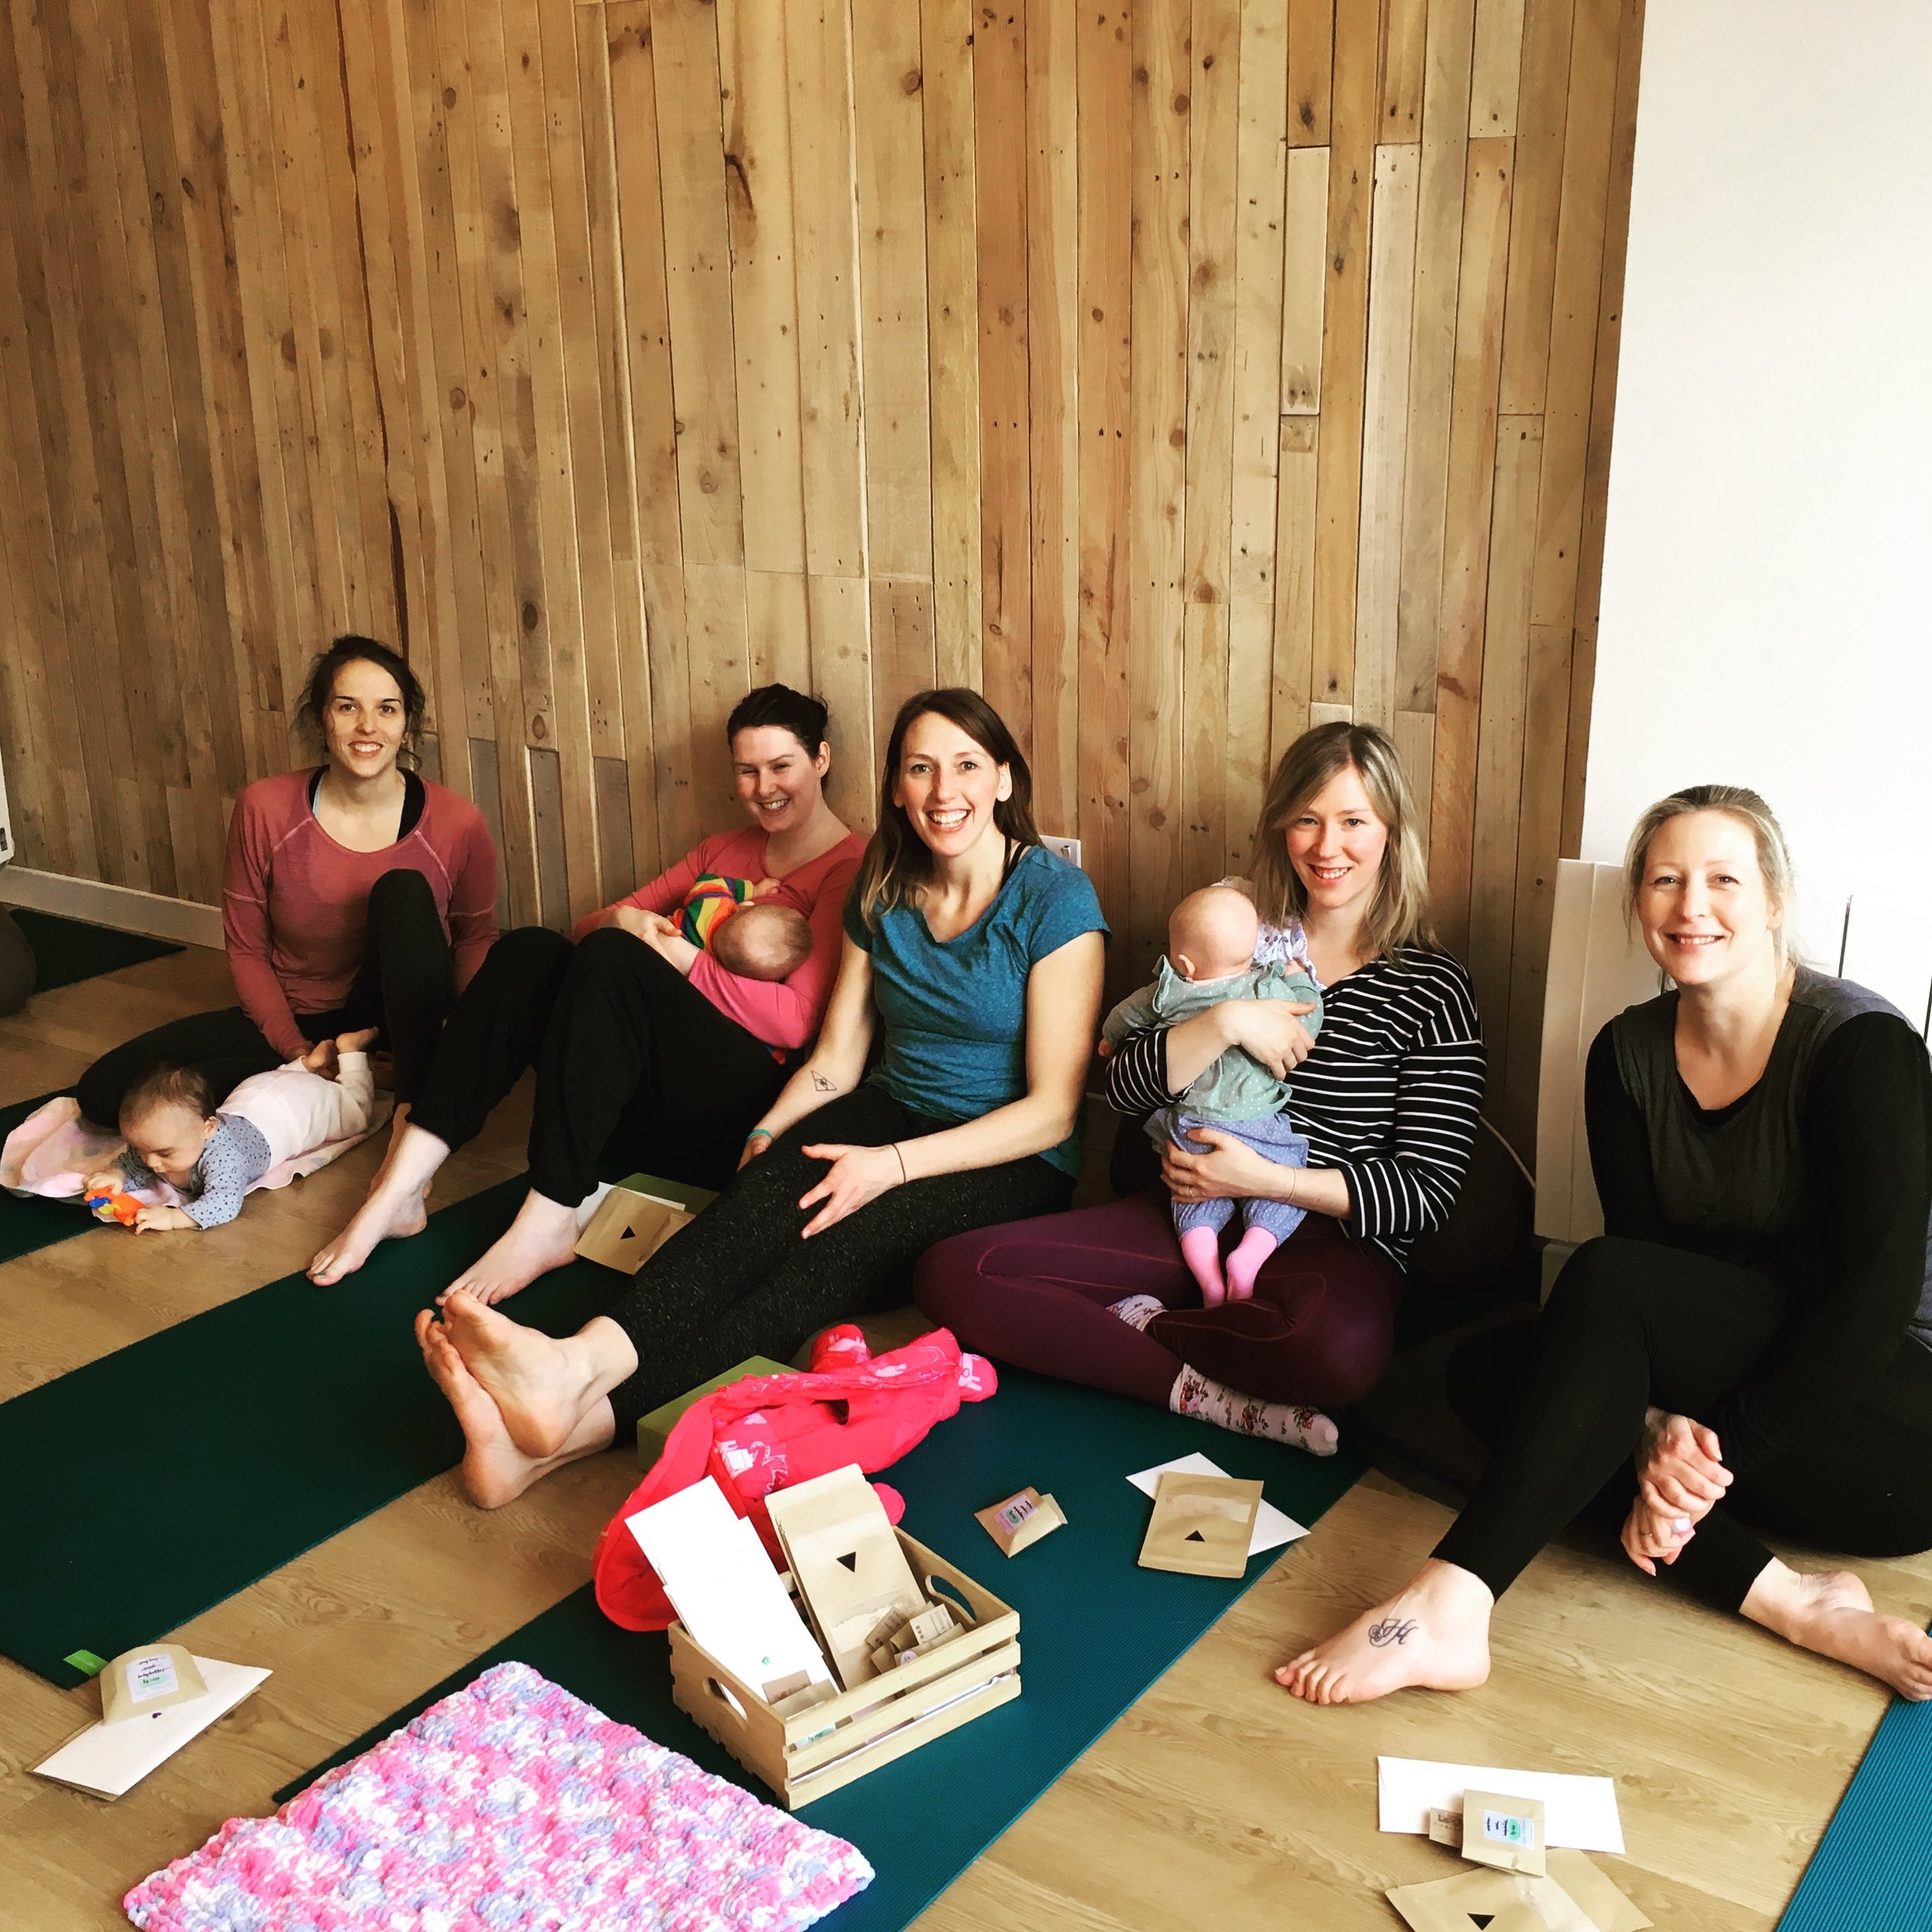 YesYoga Mum and Baby Class - Enjoying some post class chats with tea, chocolate and some self care treats.